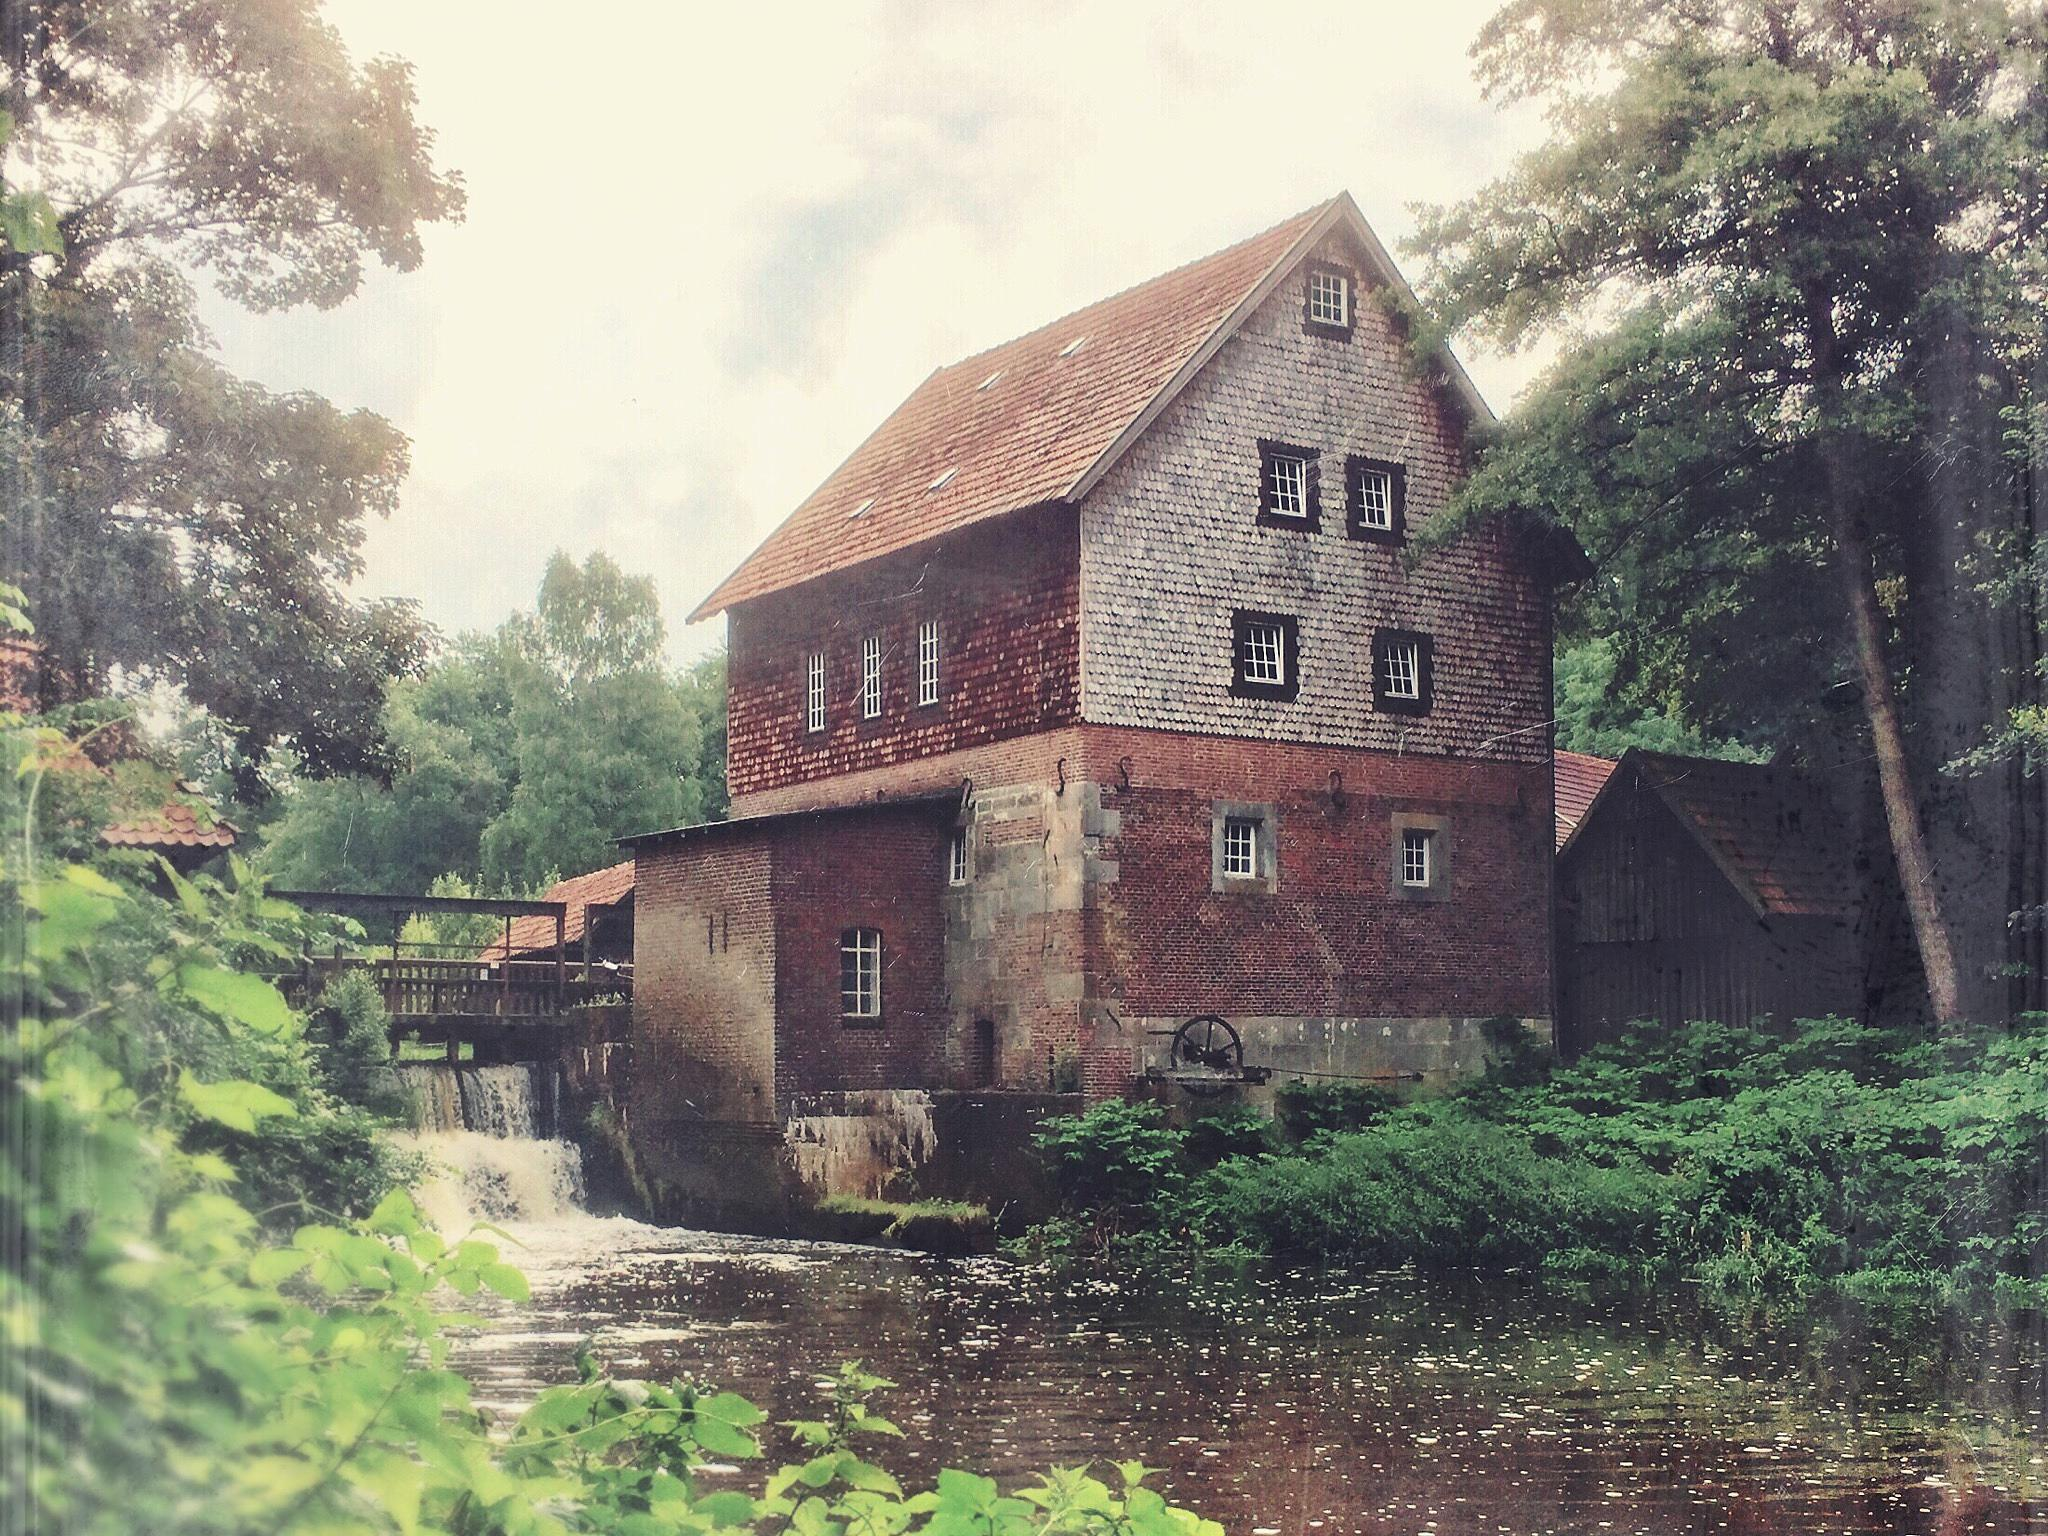 The Water Mill by hans.borghorst